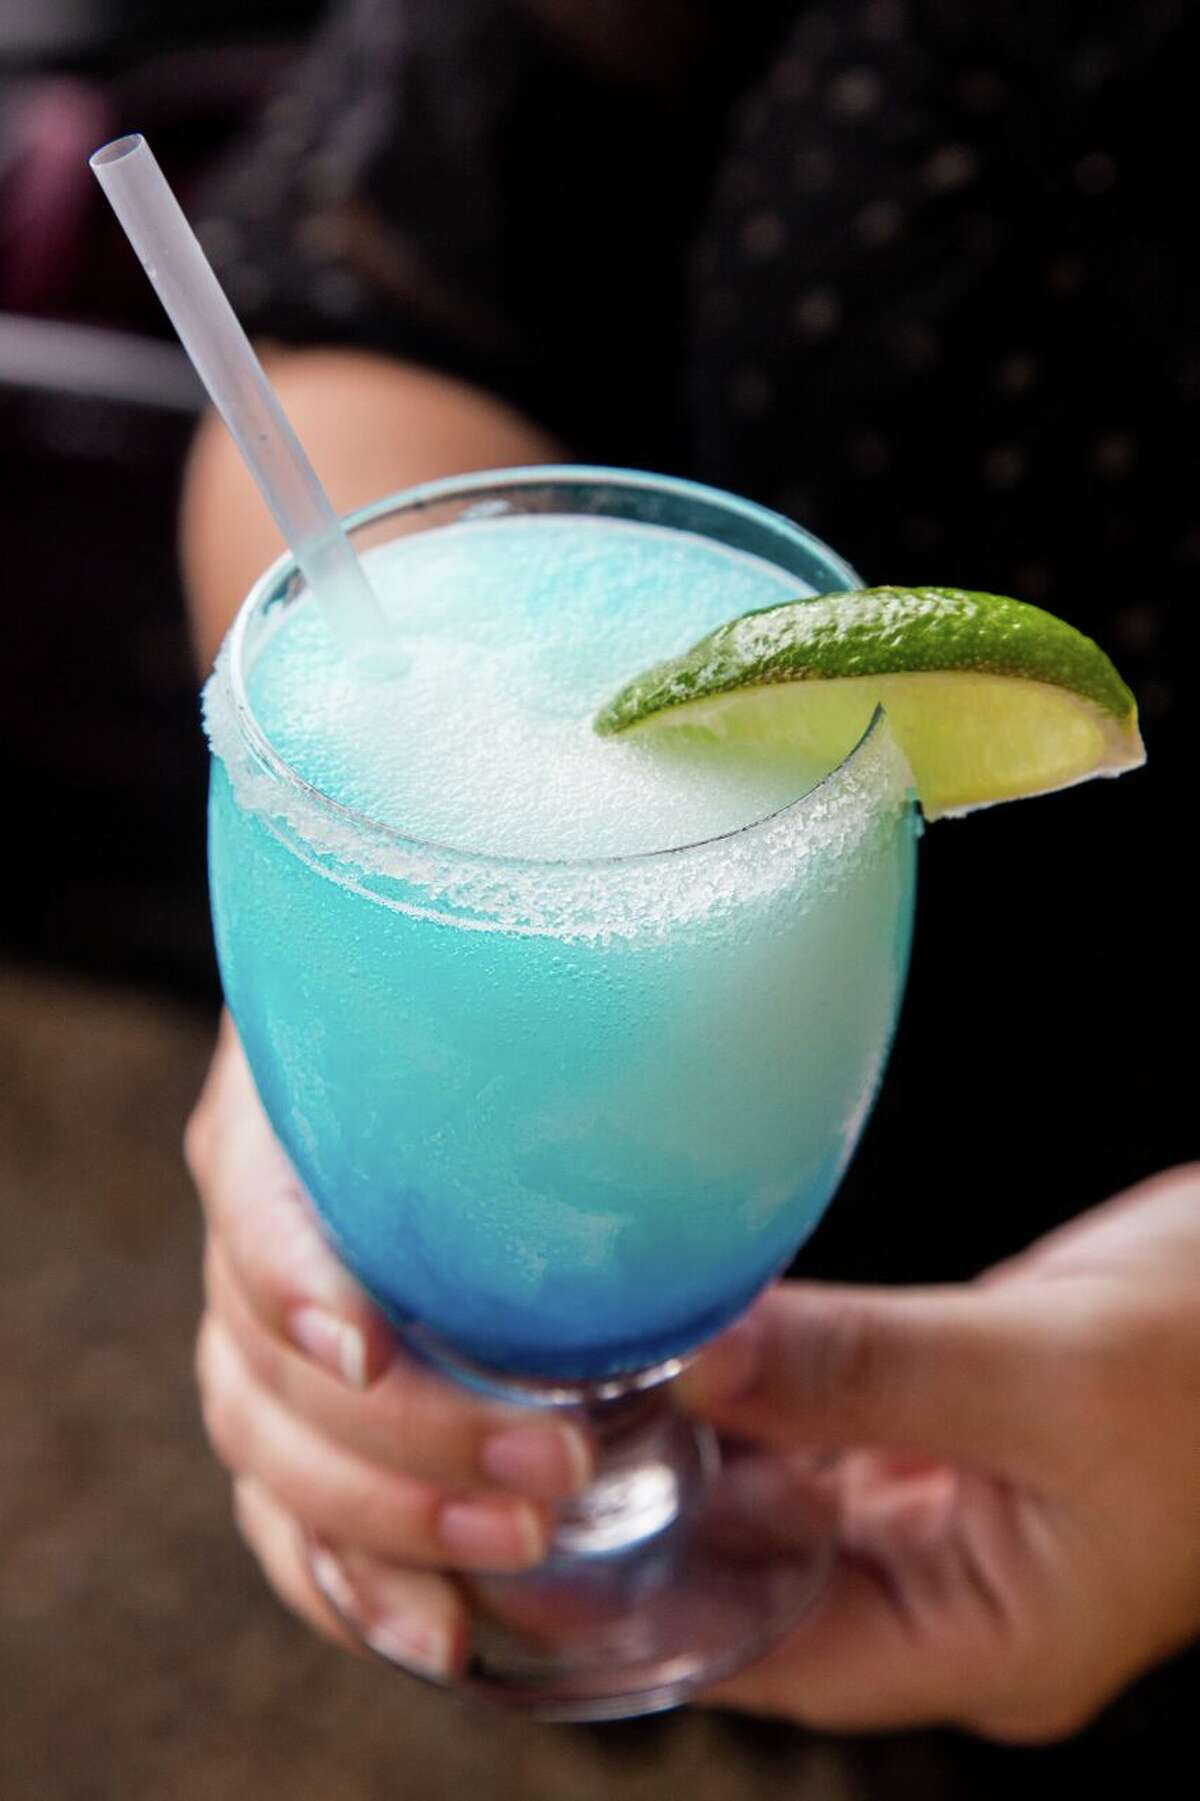 El Patio restaurant will mark National Margarita Day, Feb. 22, with famous frozen blue margaritas for $6 (normally $7) and regular house frozen margaritas for $5 (normally $6.25).